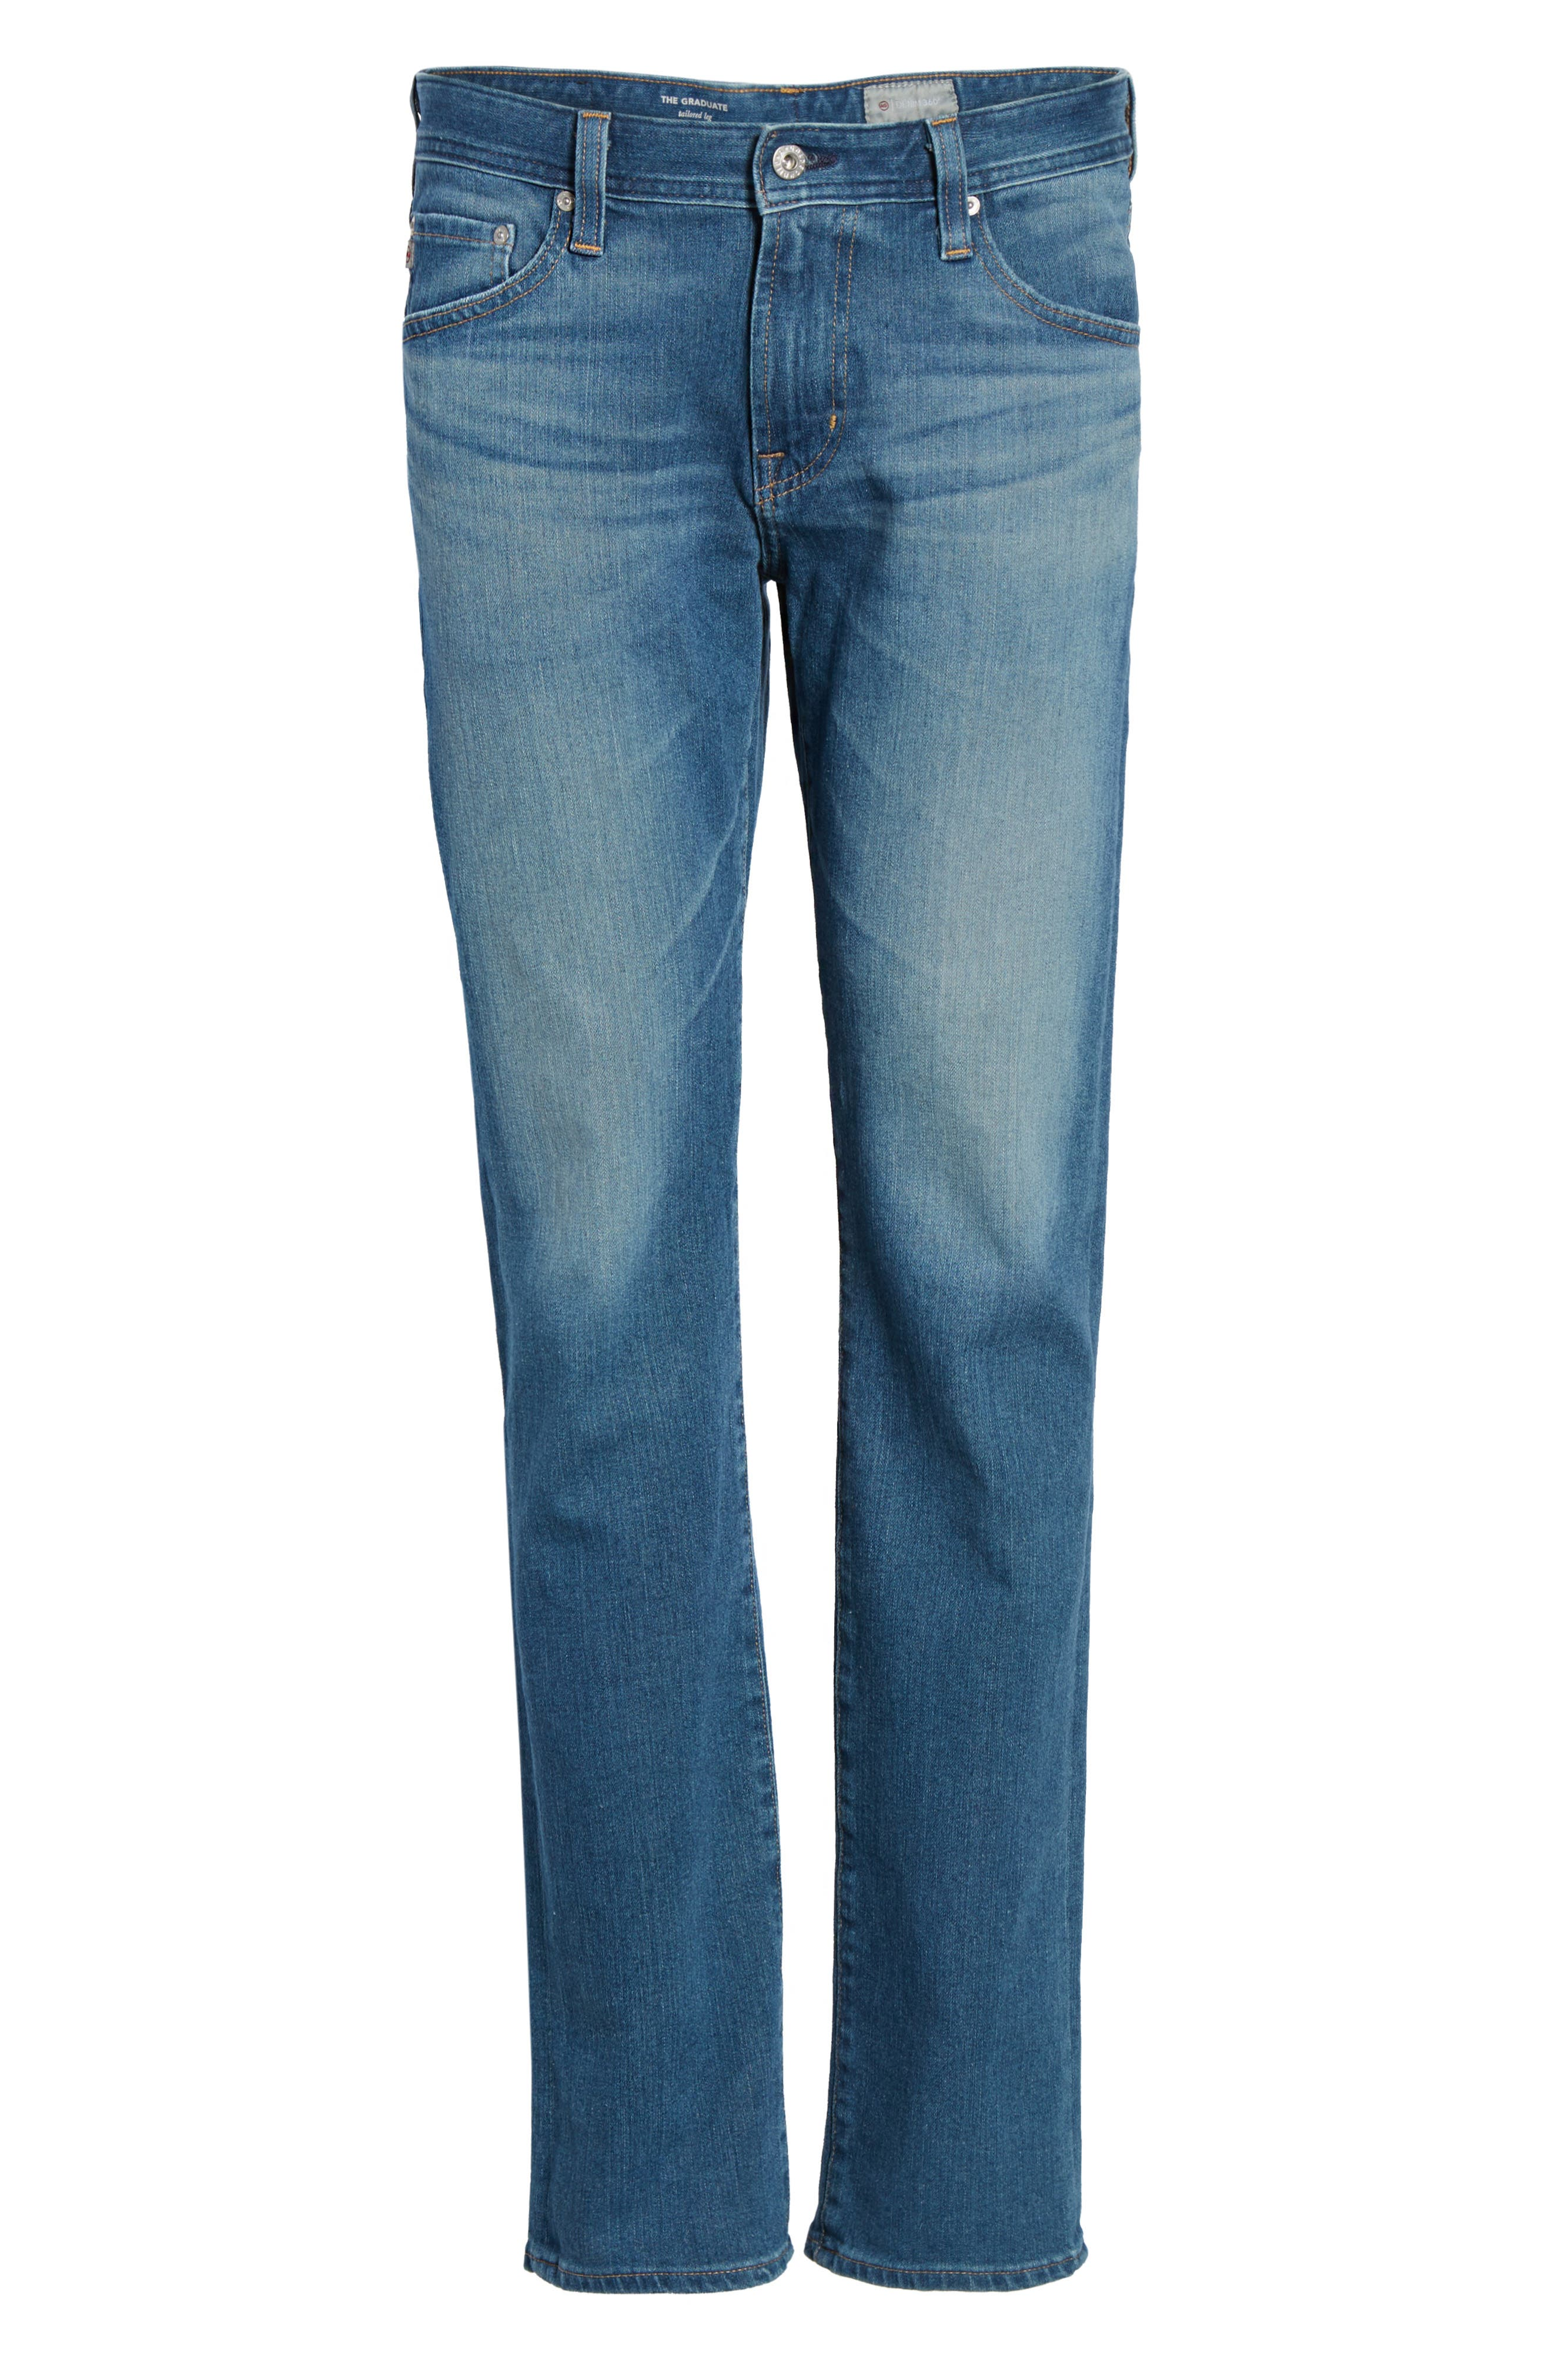 Graduate Slim Straight Fit Jeans,                             Alternate thumbnail 6, color,                             Typewriter